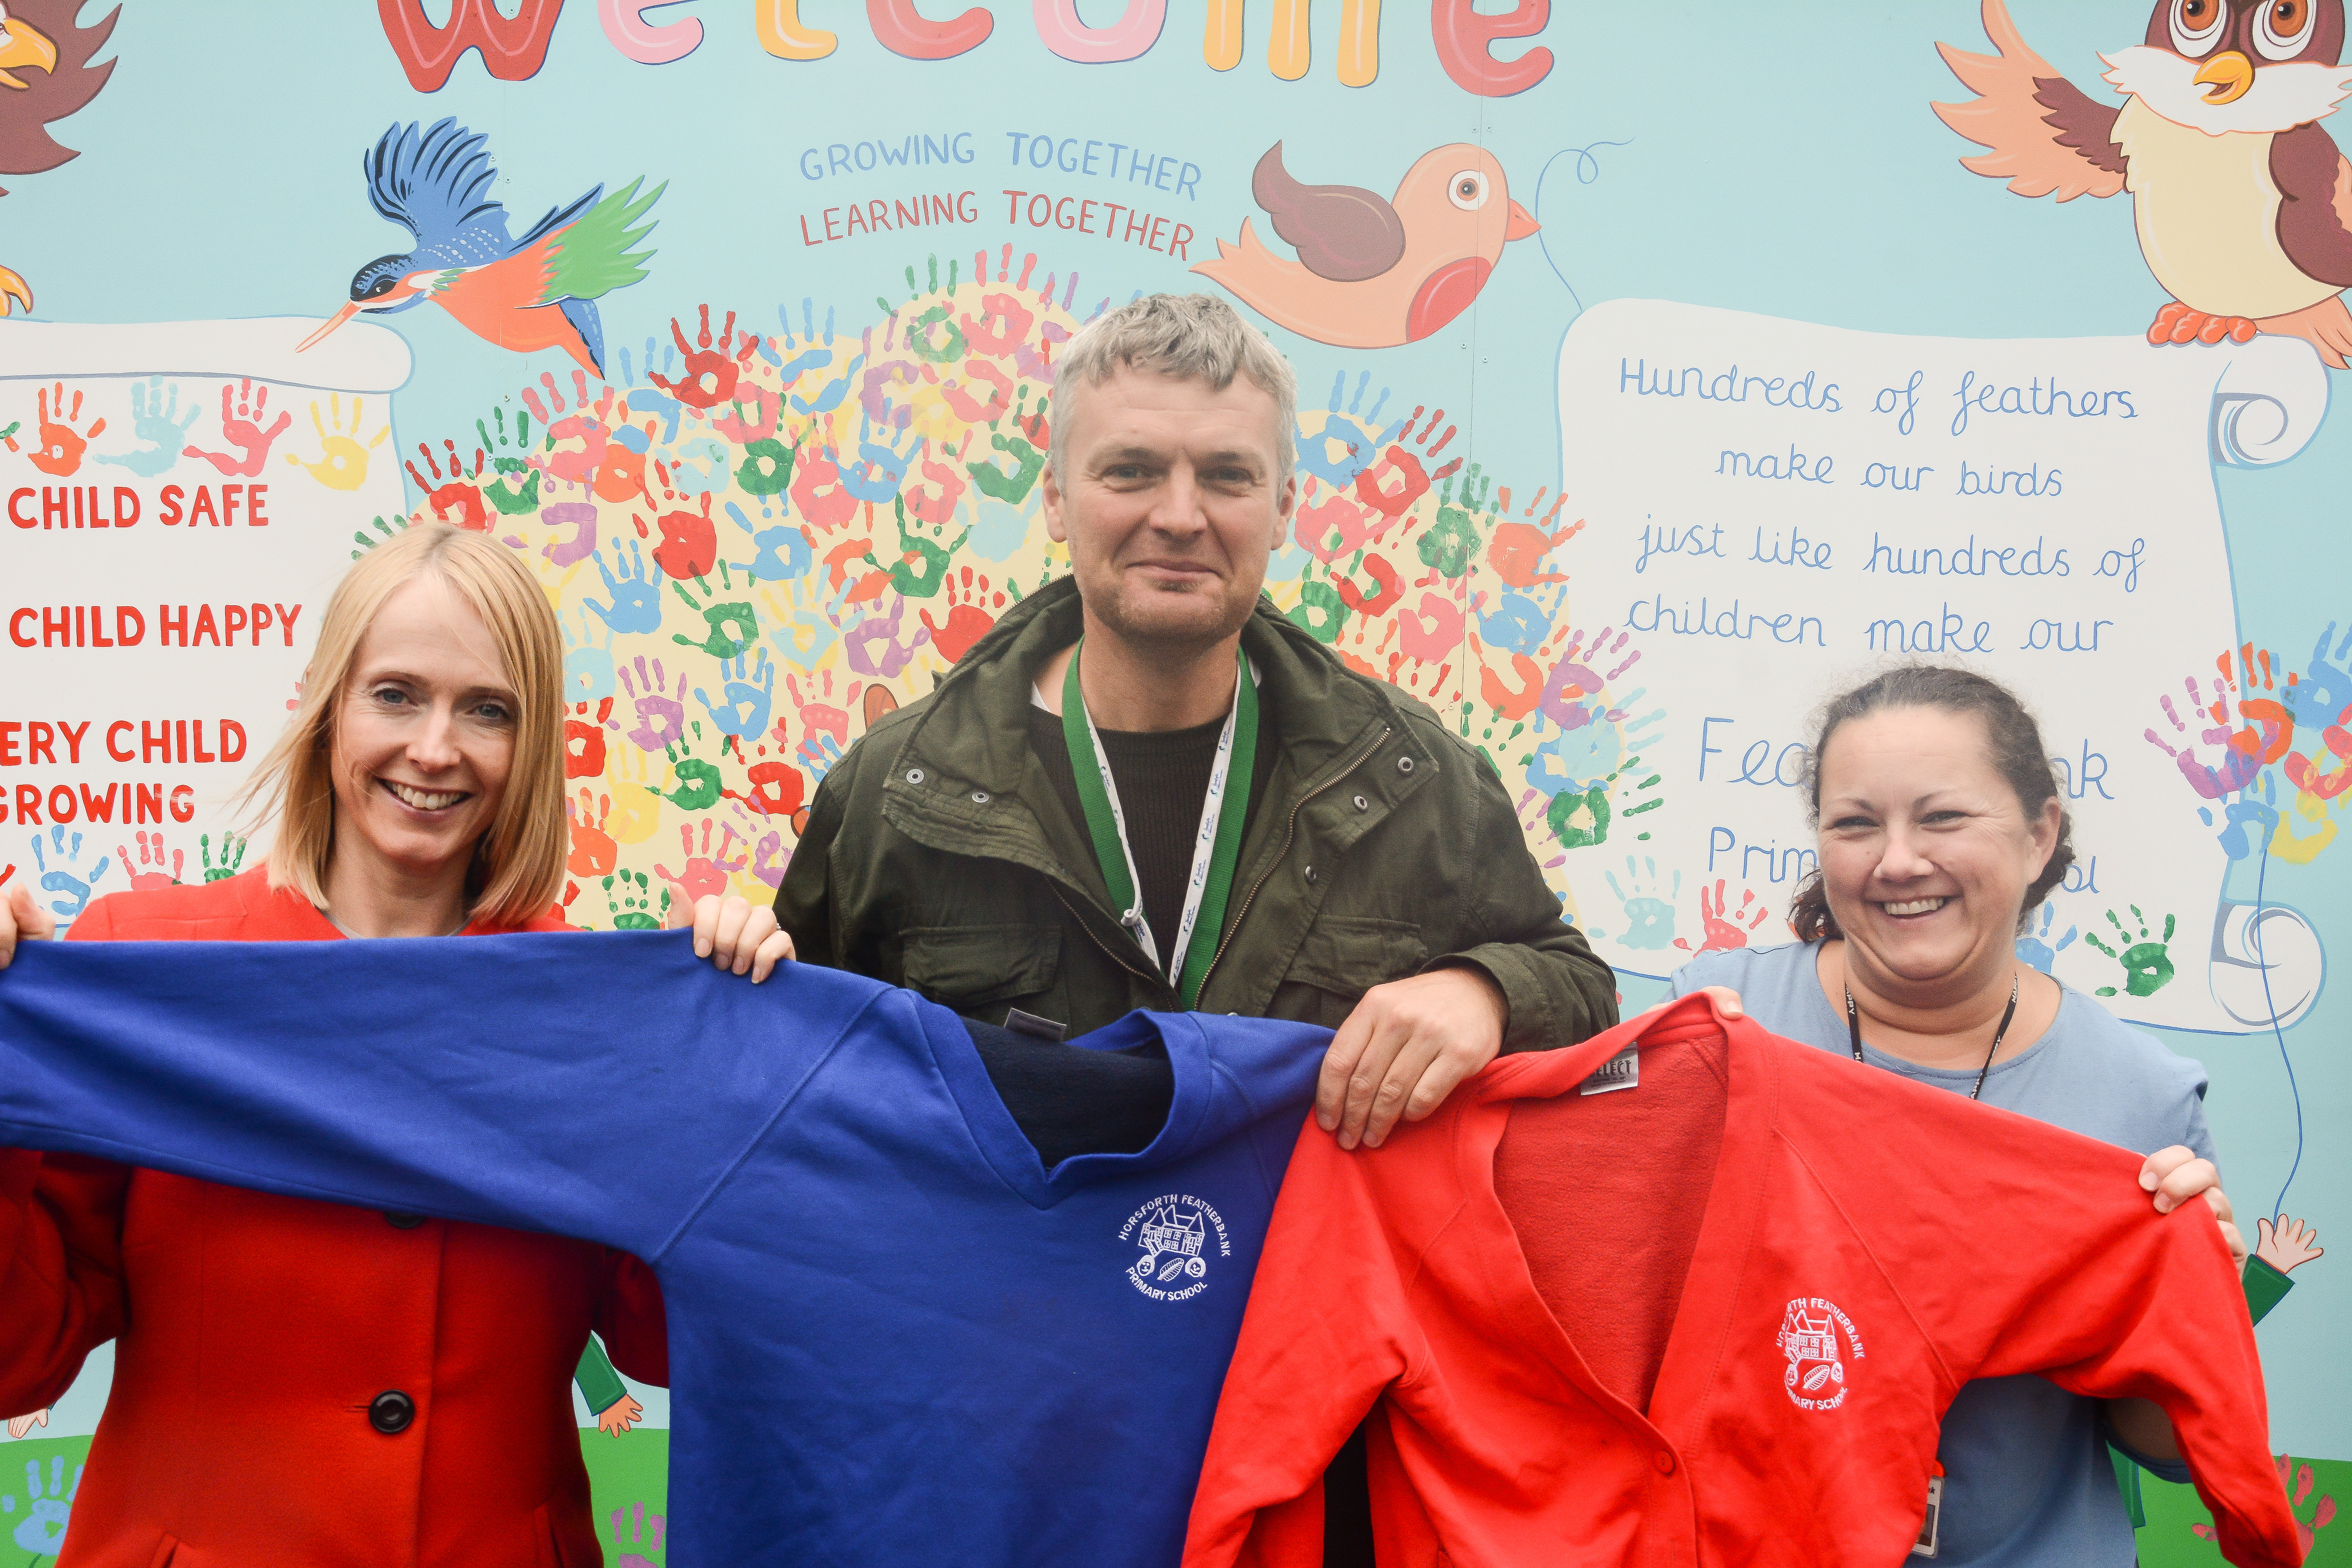 Manning Stainton at featherbank primary school